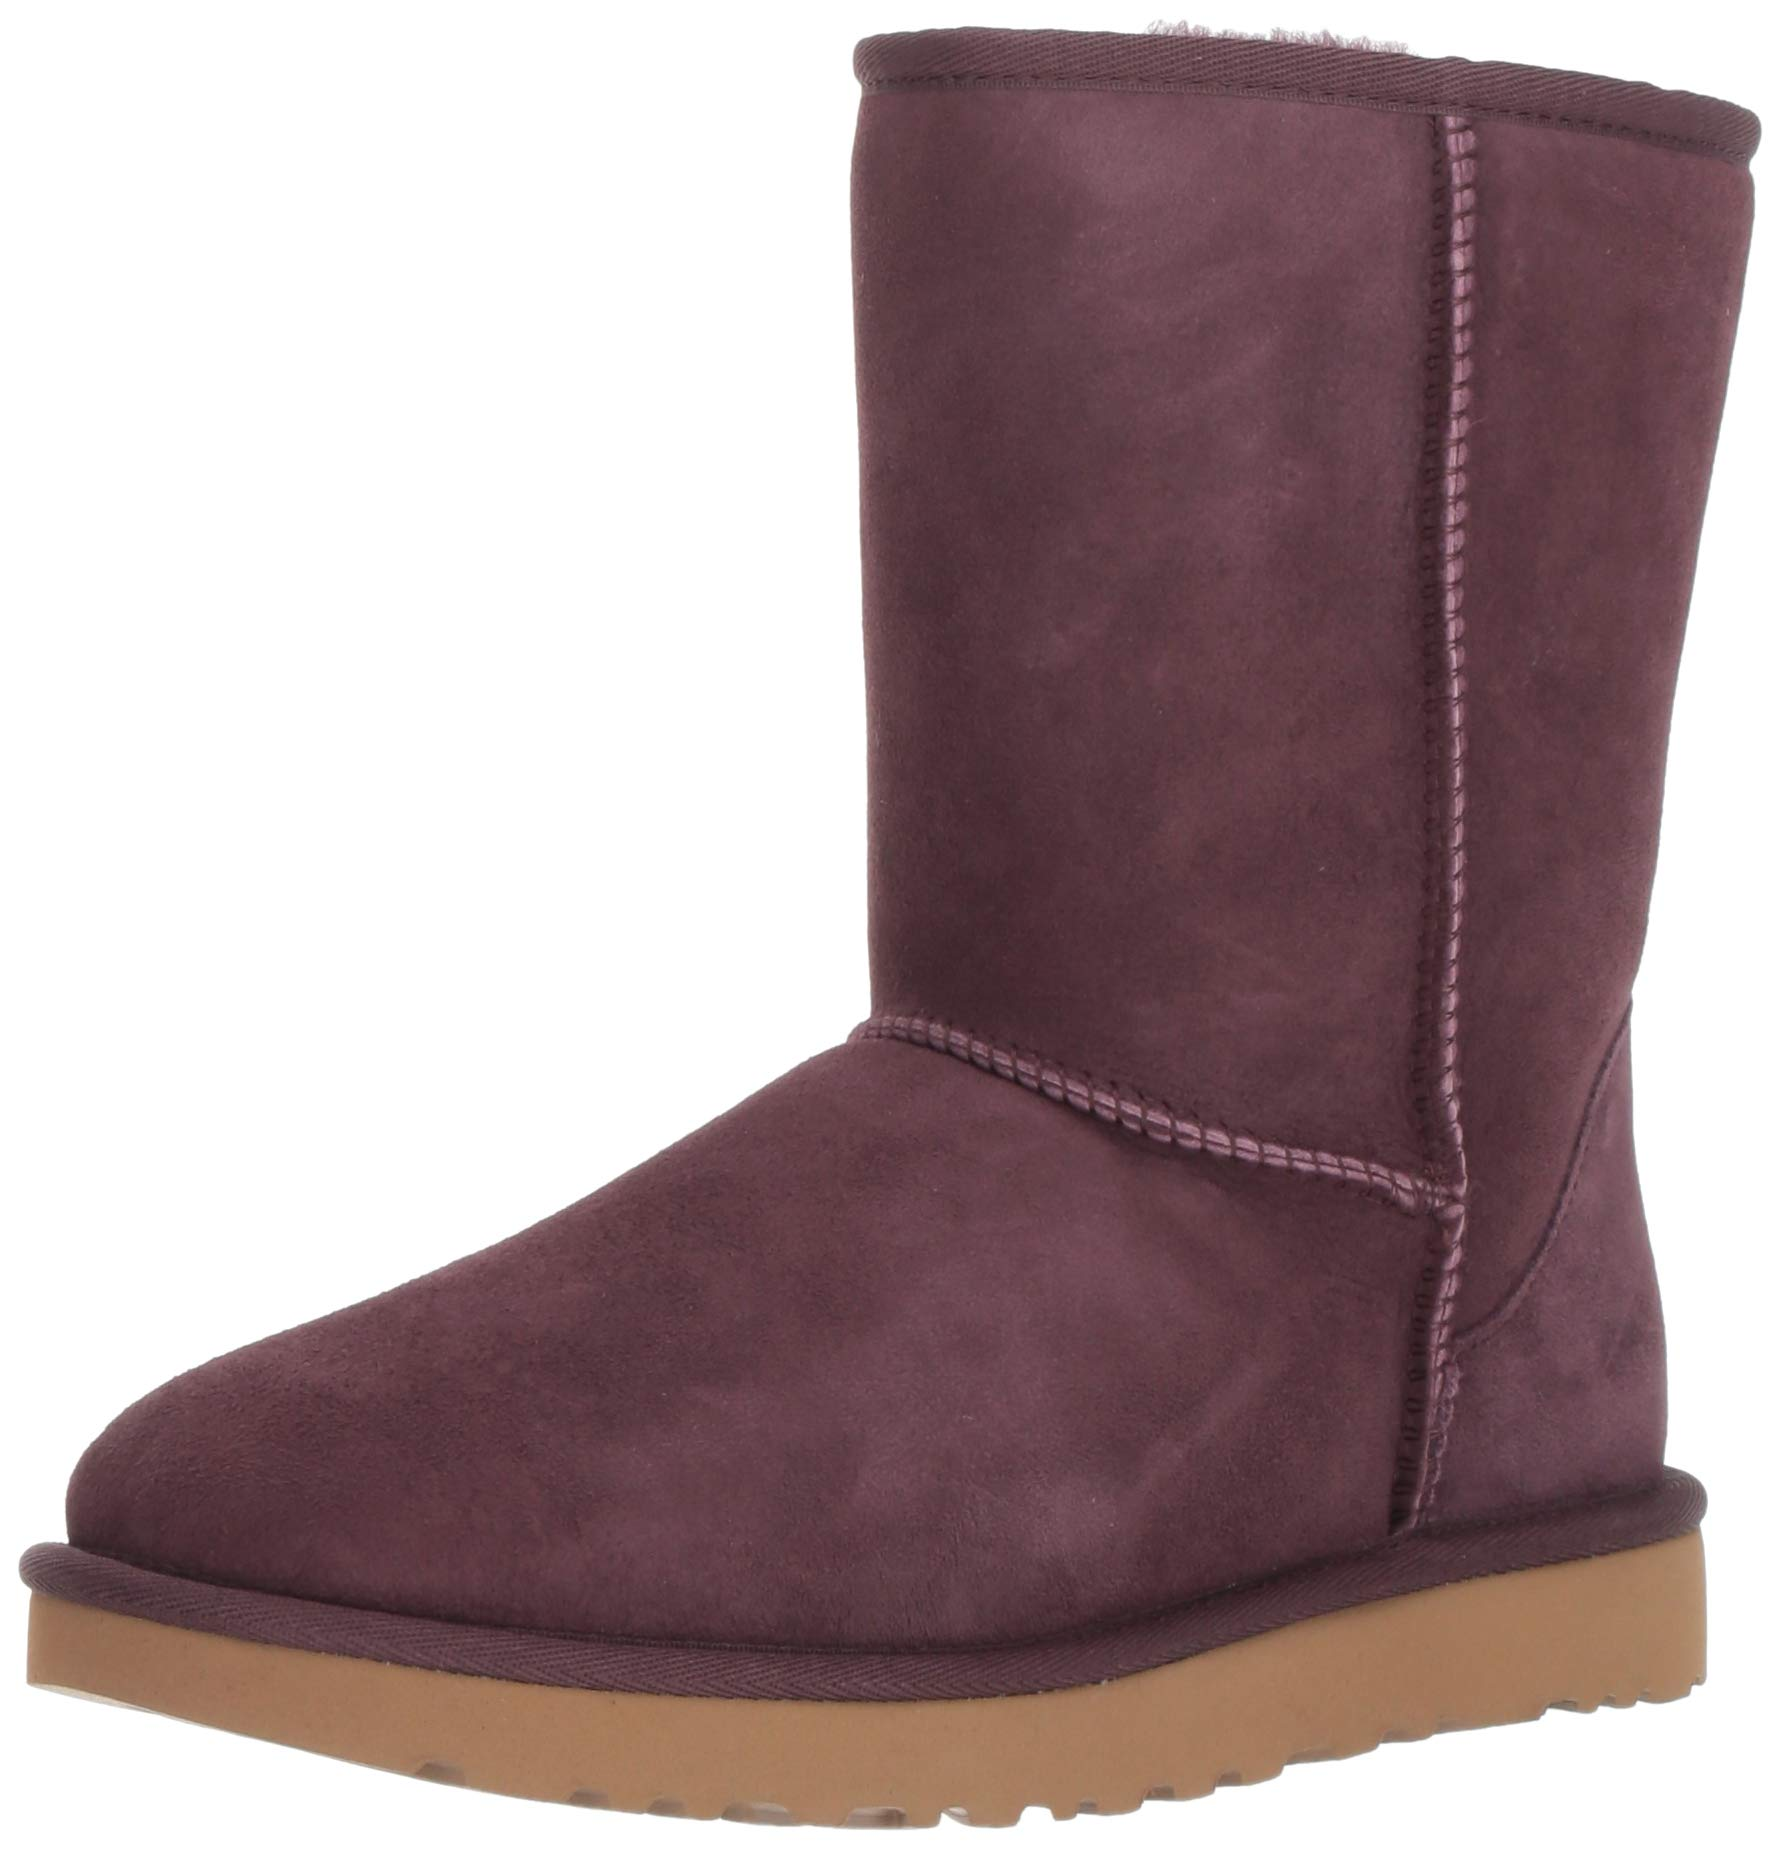 UGG Women's W Classic Short II Fashion Boot, Port, 7 M US by UGG